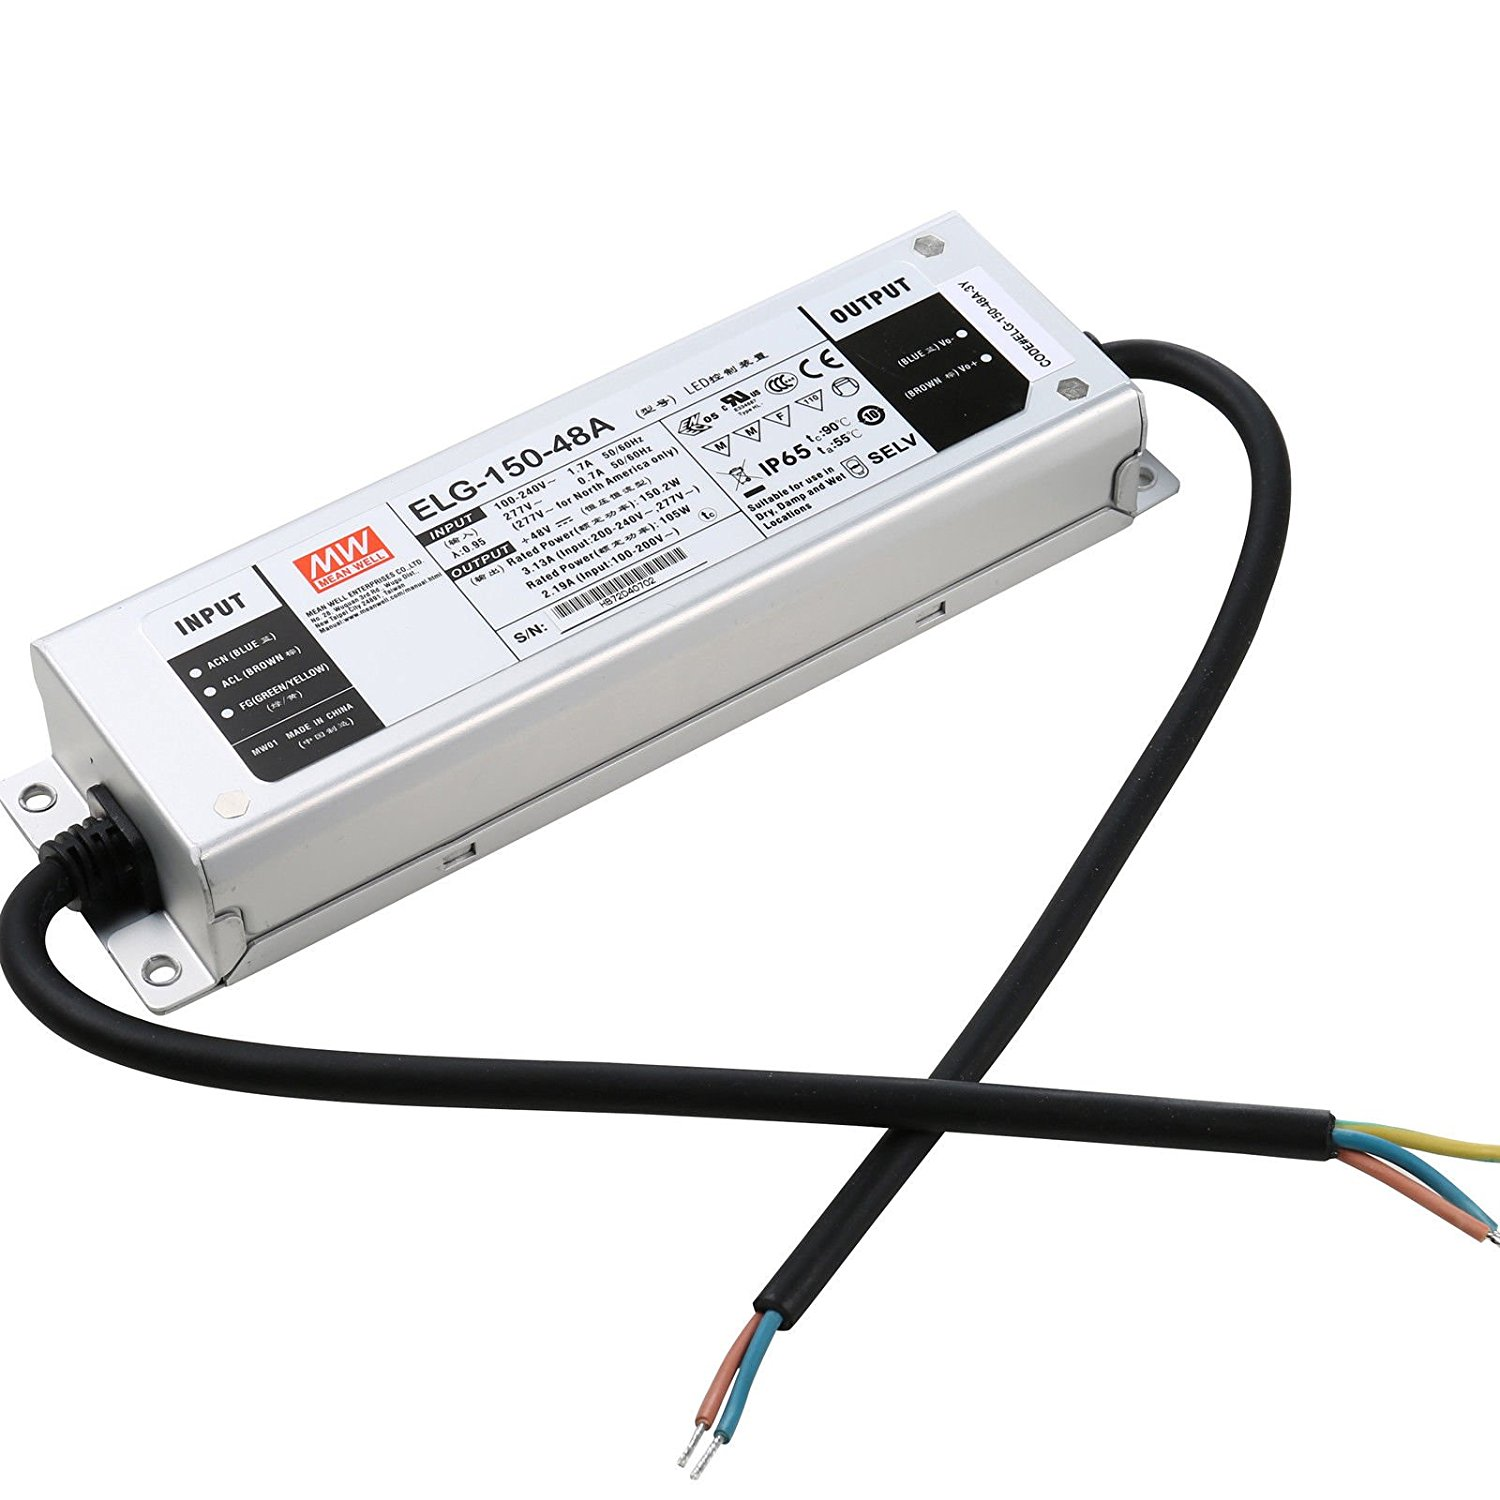 ELG-150-48A 150Watt 45V 48V 50V IP65 Waterproof DC Power Supply